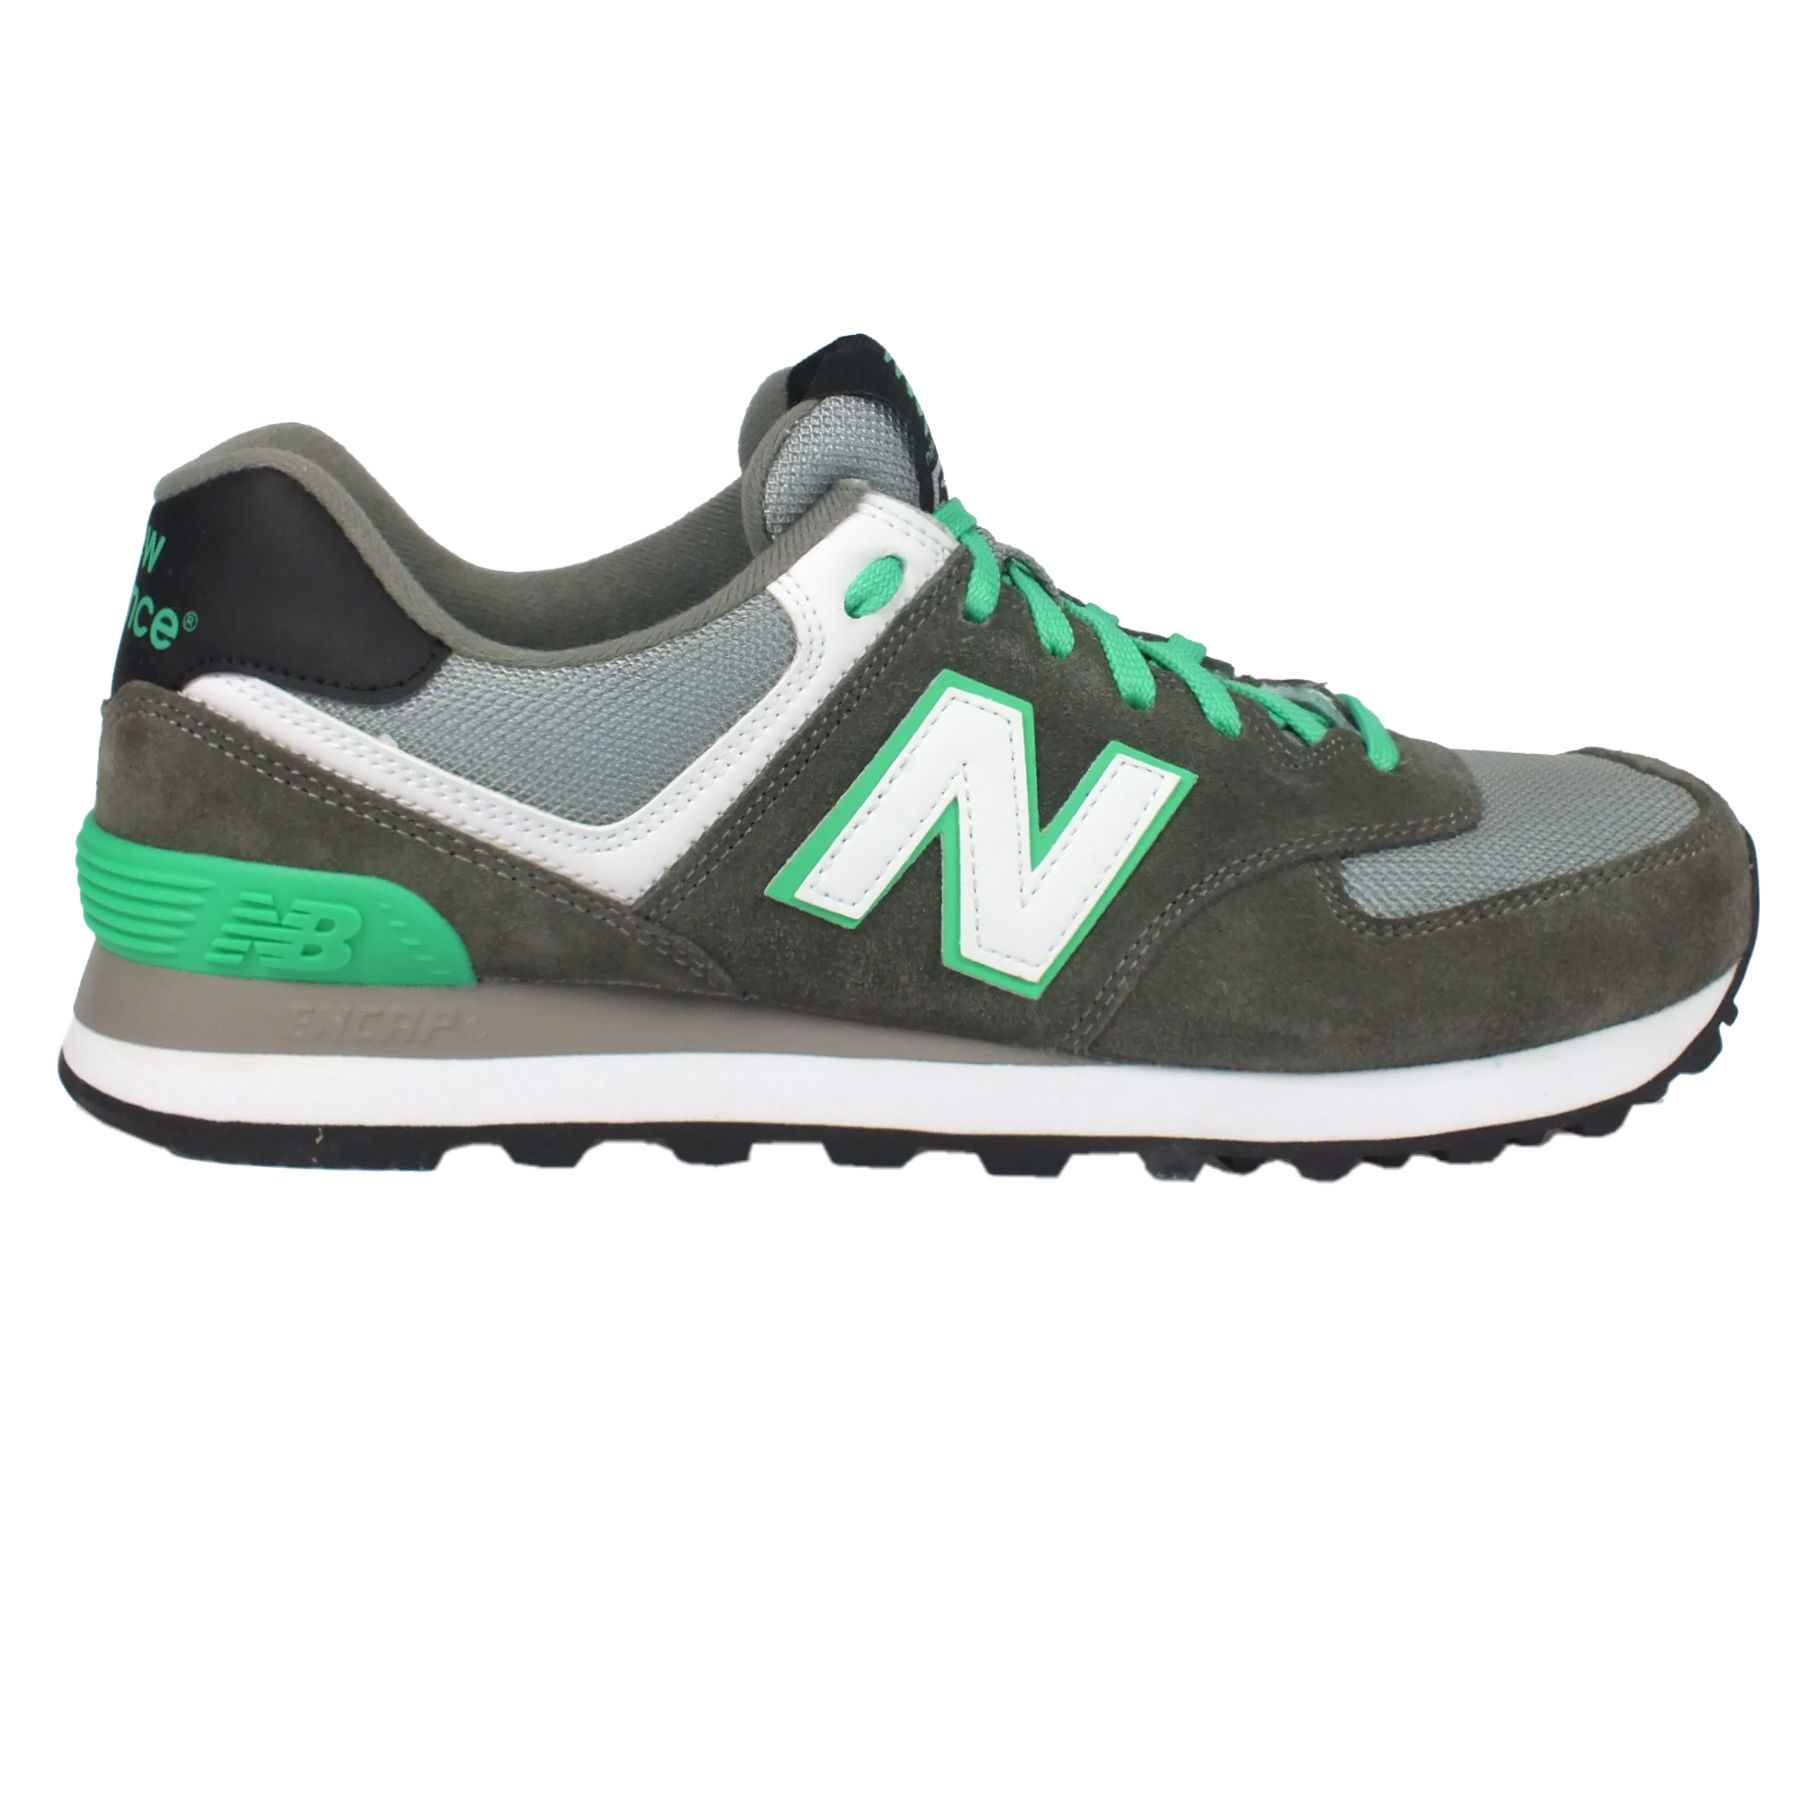 new balance ml574 herren damen schuhe turnschuhe sneakers freizeitschuhe ebay. Black Bedroom Furniture Sets. Home Design Ideas